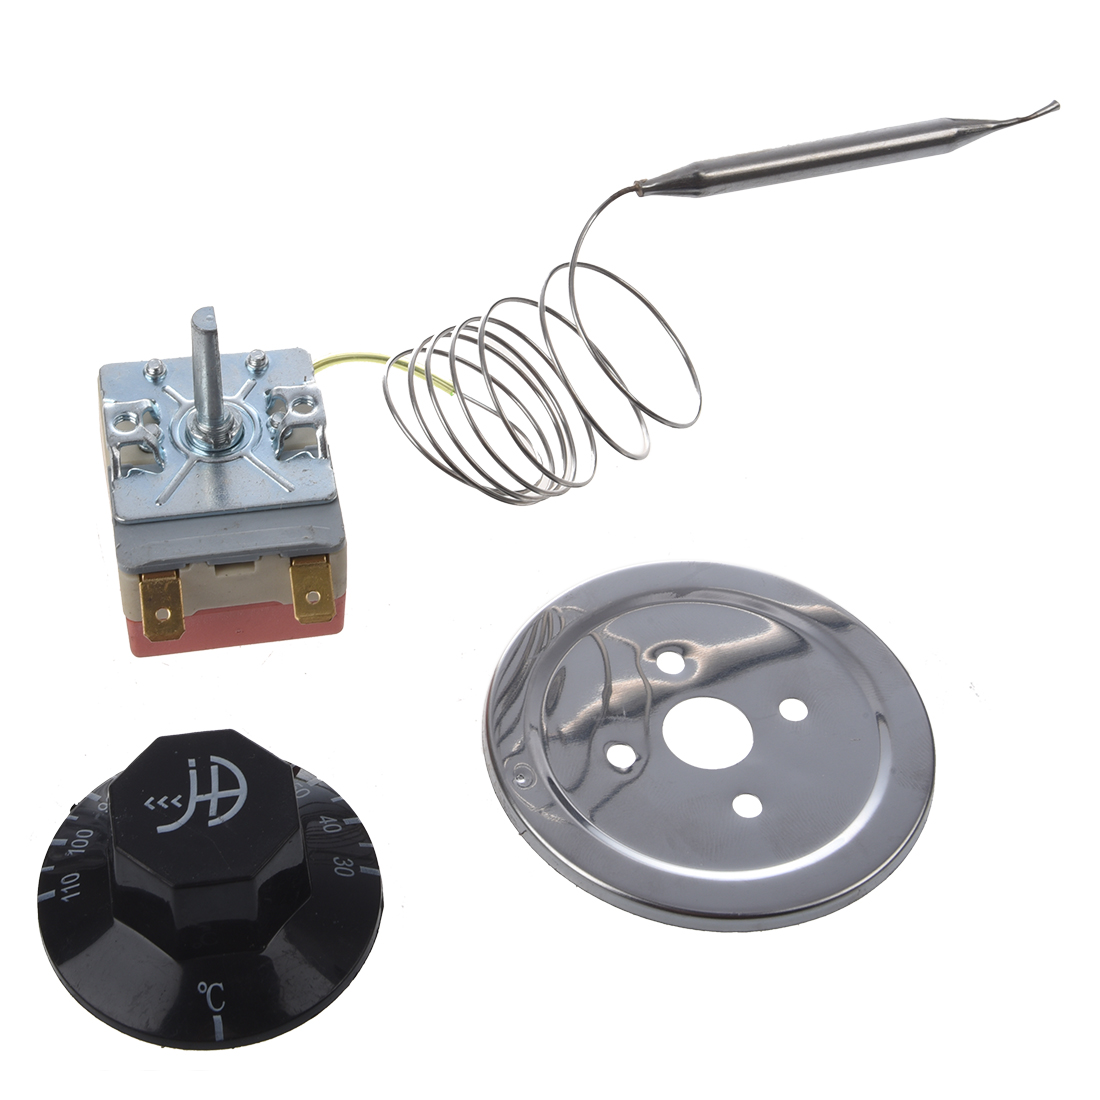 AC 250V 16A Temperature Capillary Thermostat 30-110 Celsius Degree Induction cooker accessories fn660 16 10 110 250v 16a